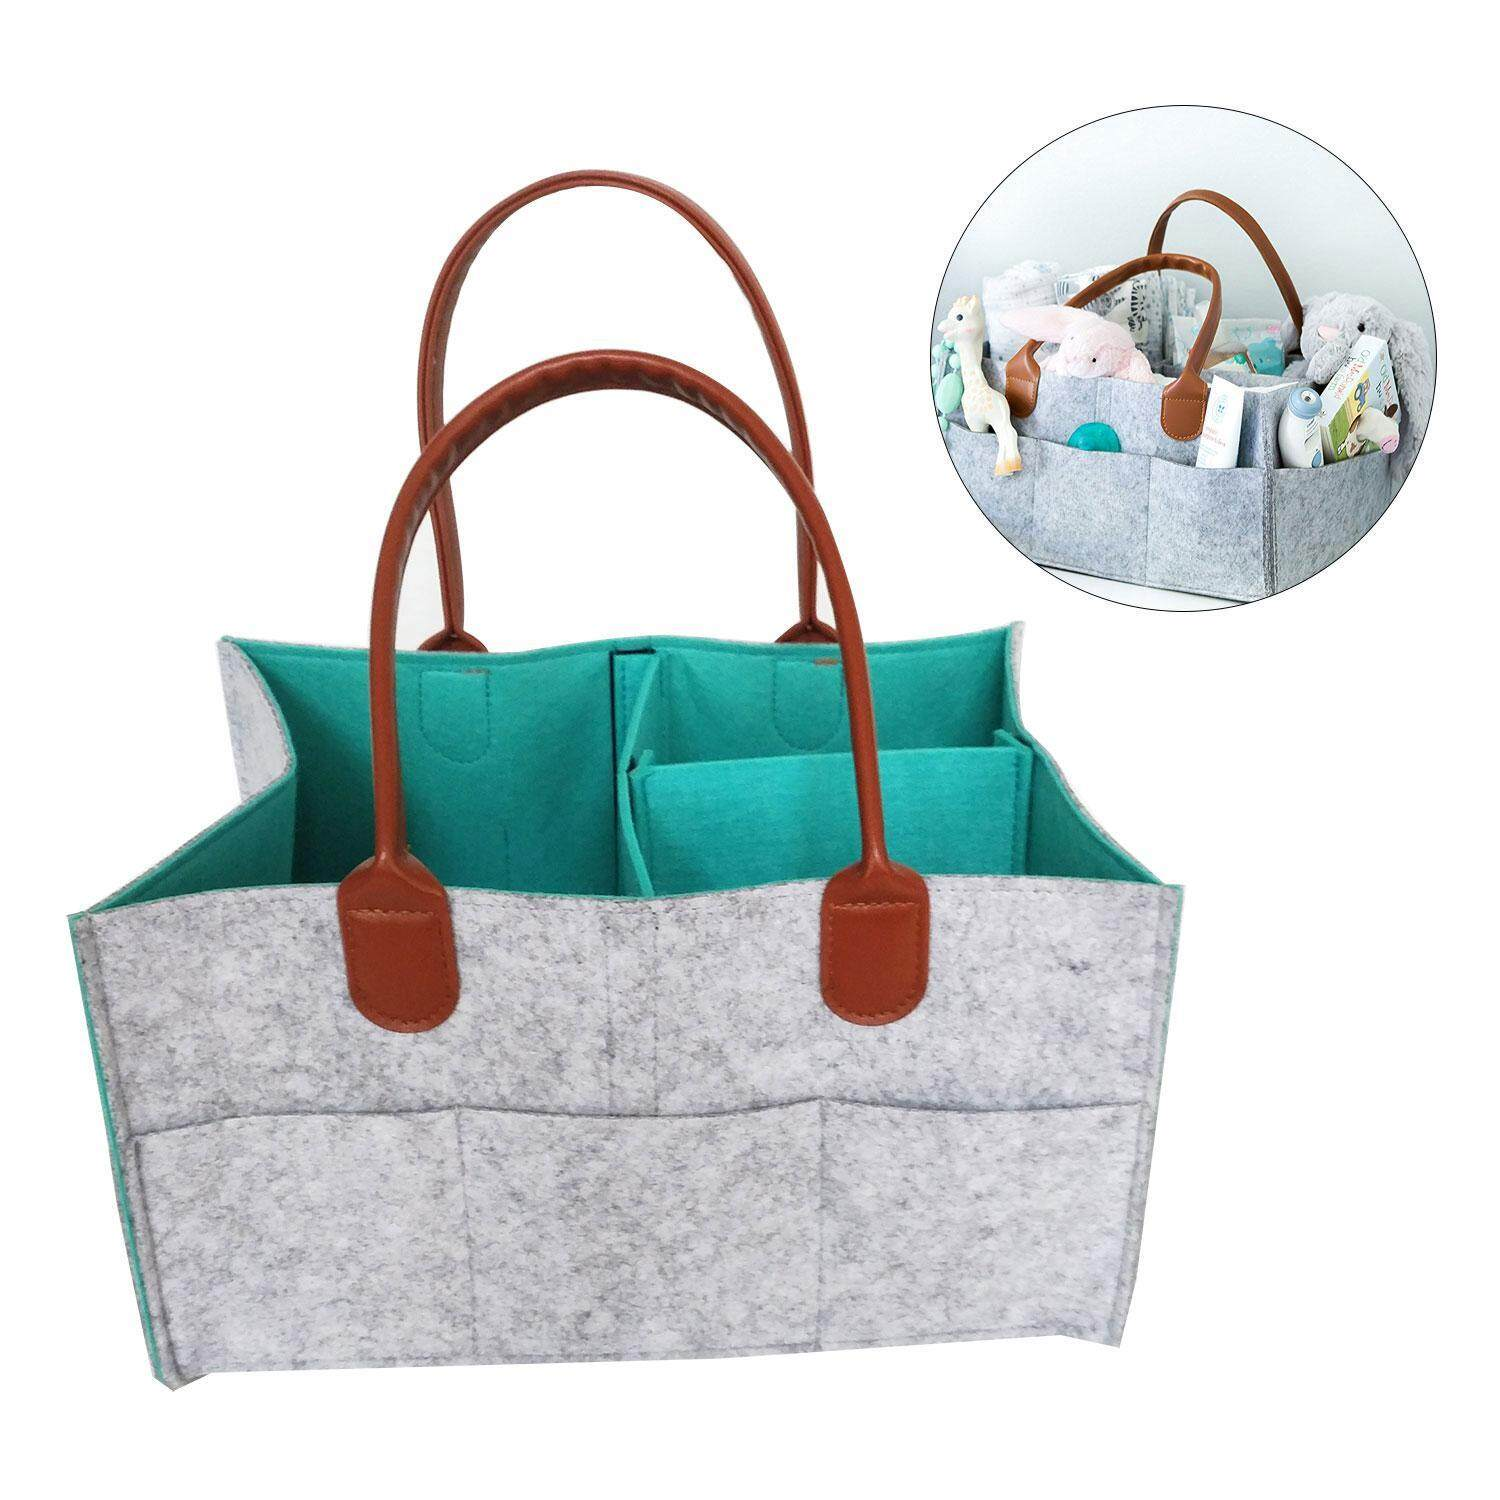 Diaper Bags For The Best Price In Malaysia Babygo Inc Metro Backpack Blue Hosdog Foldable Baby Caddy Organizer Portable Basket Storage